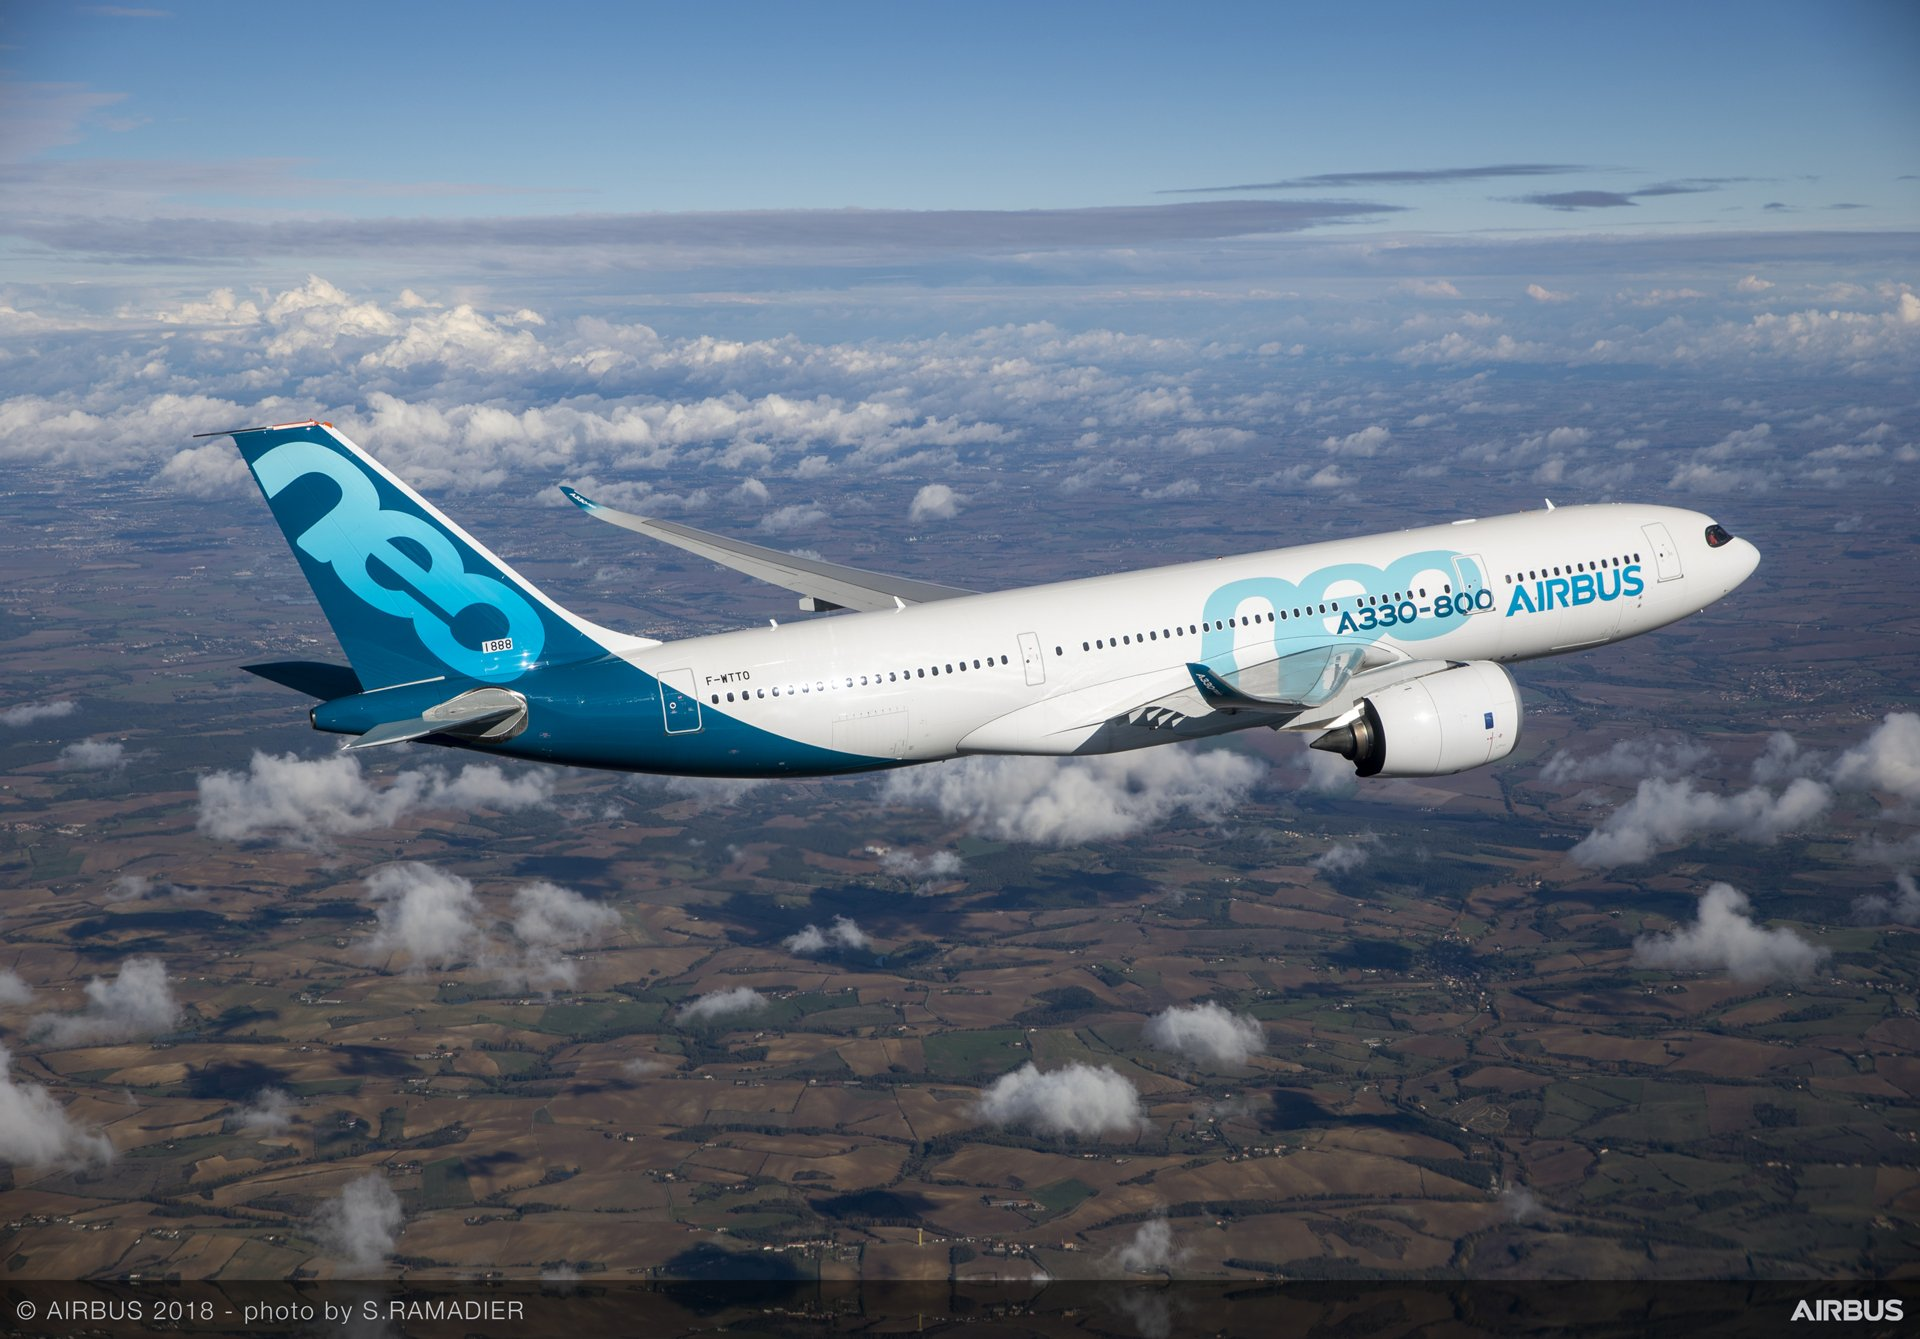 Incorporating new Rolls-Royce Trent 7000 engines, the A330-800 is the most efficient, longest-range entry-level widebody aircraft